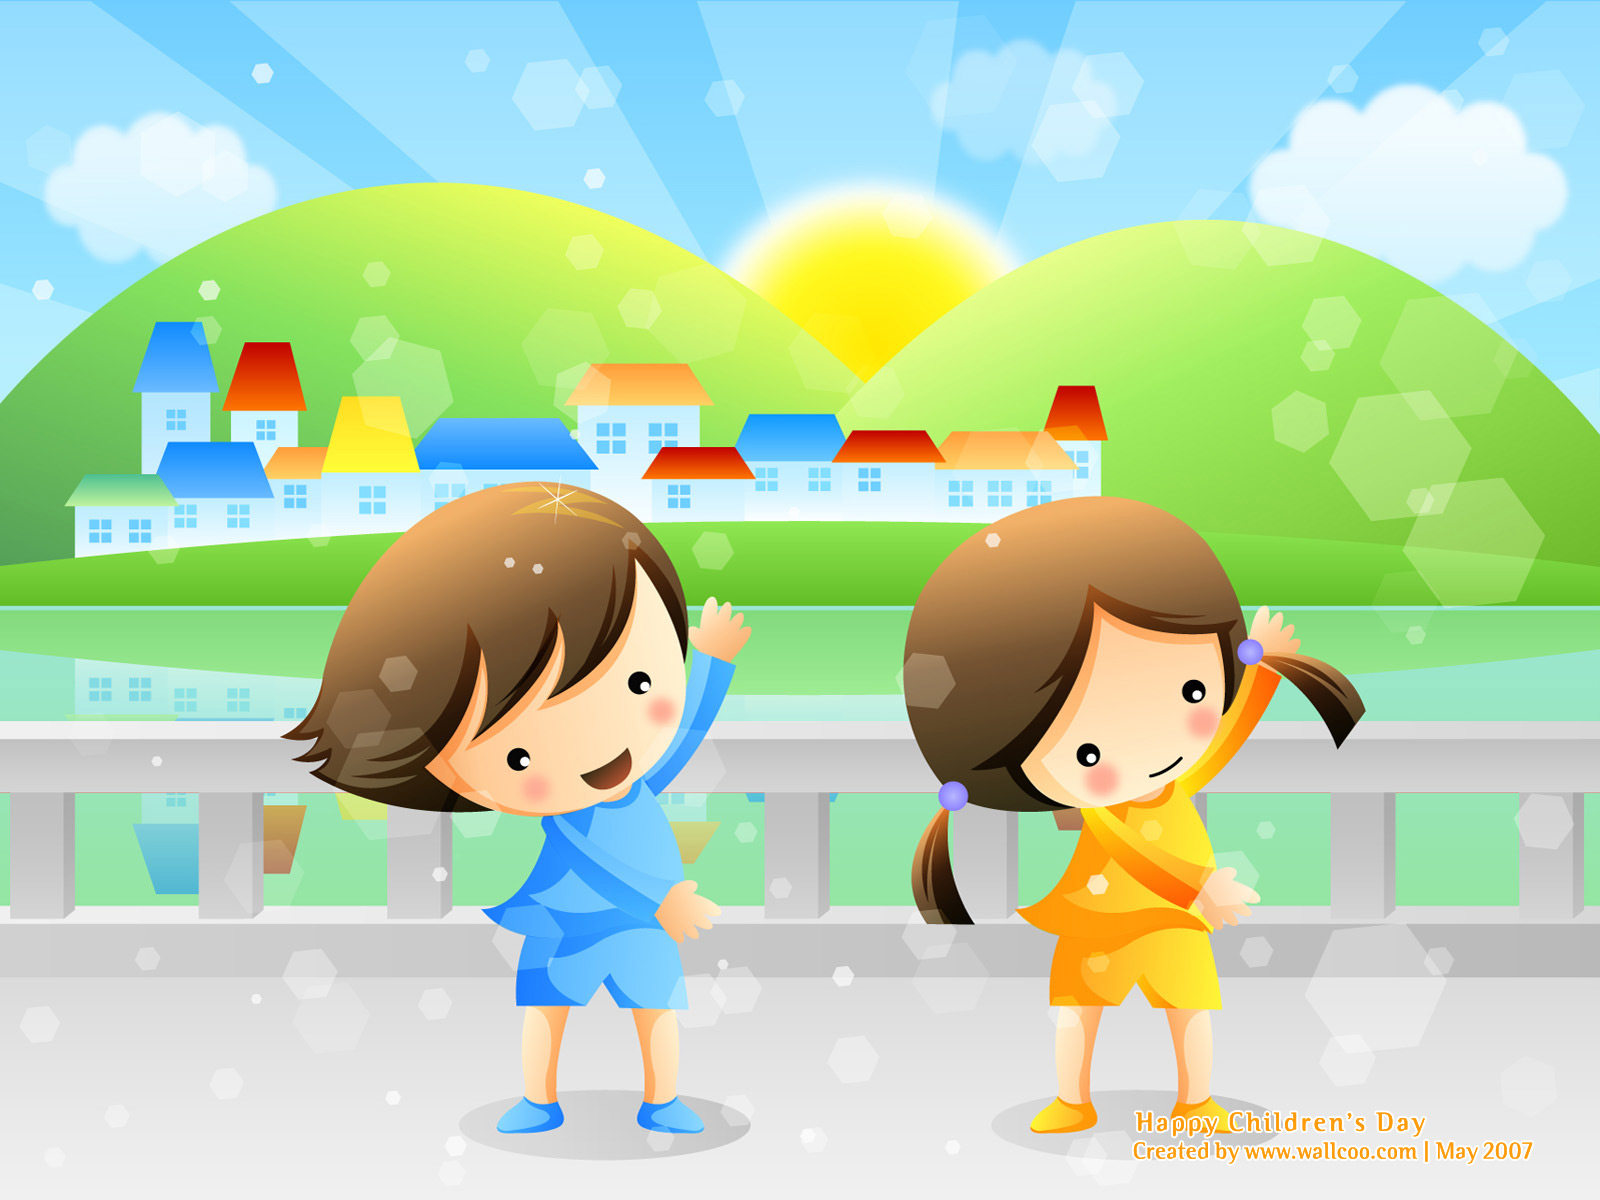 Children's Day Wallpaper 4